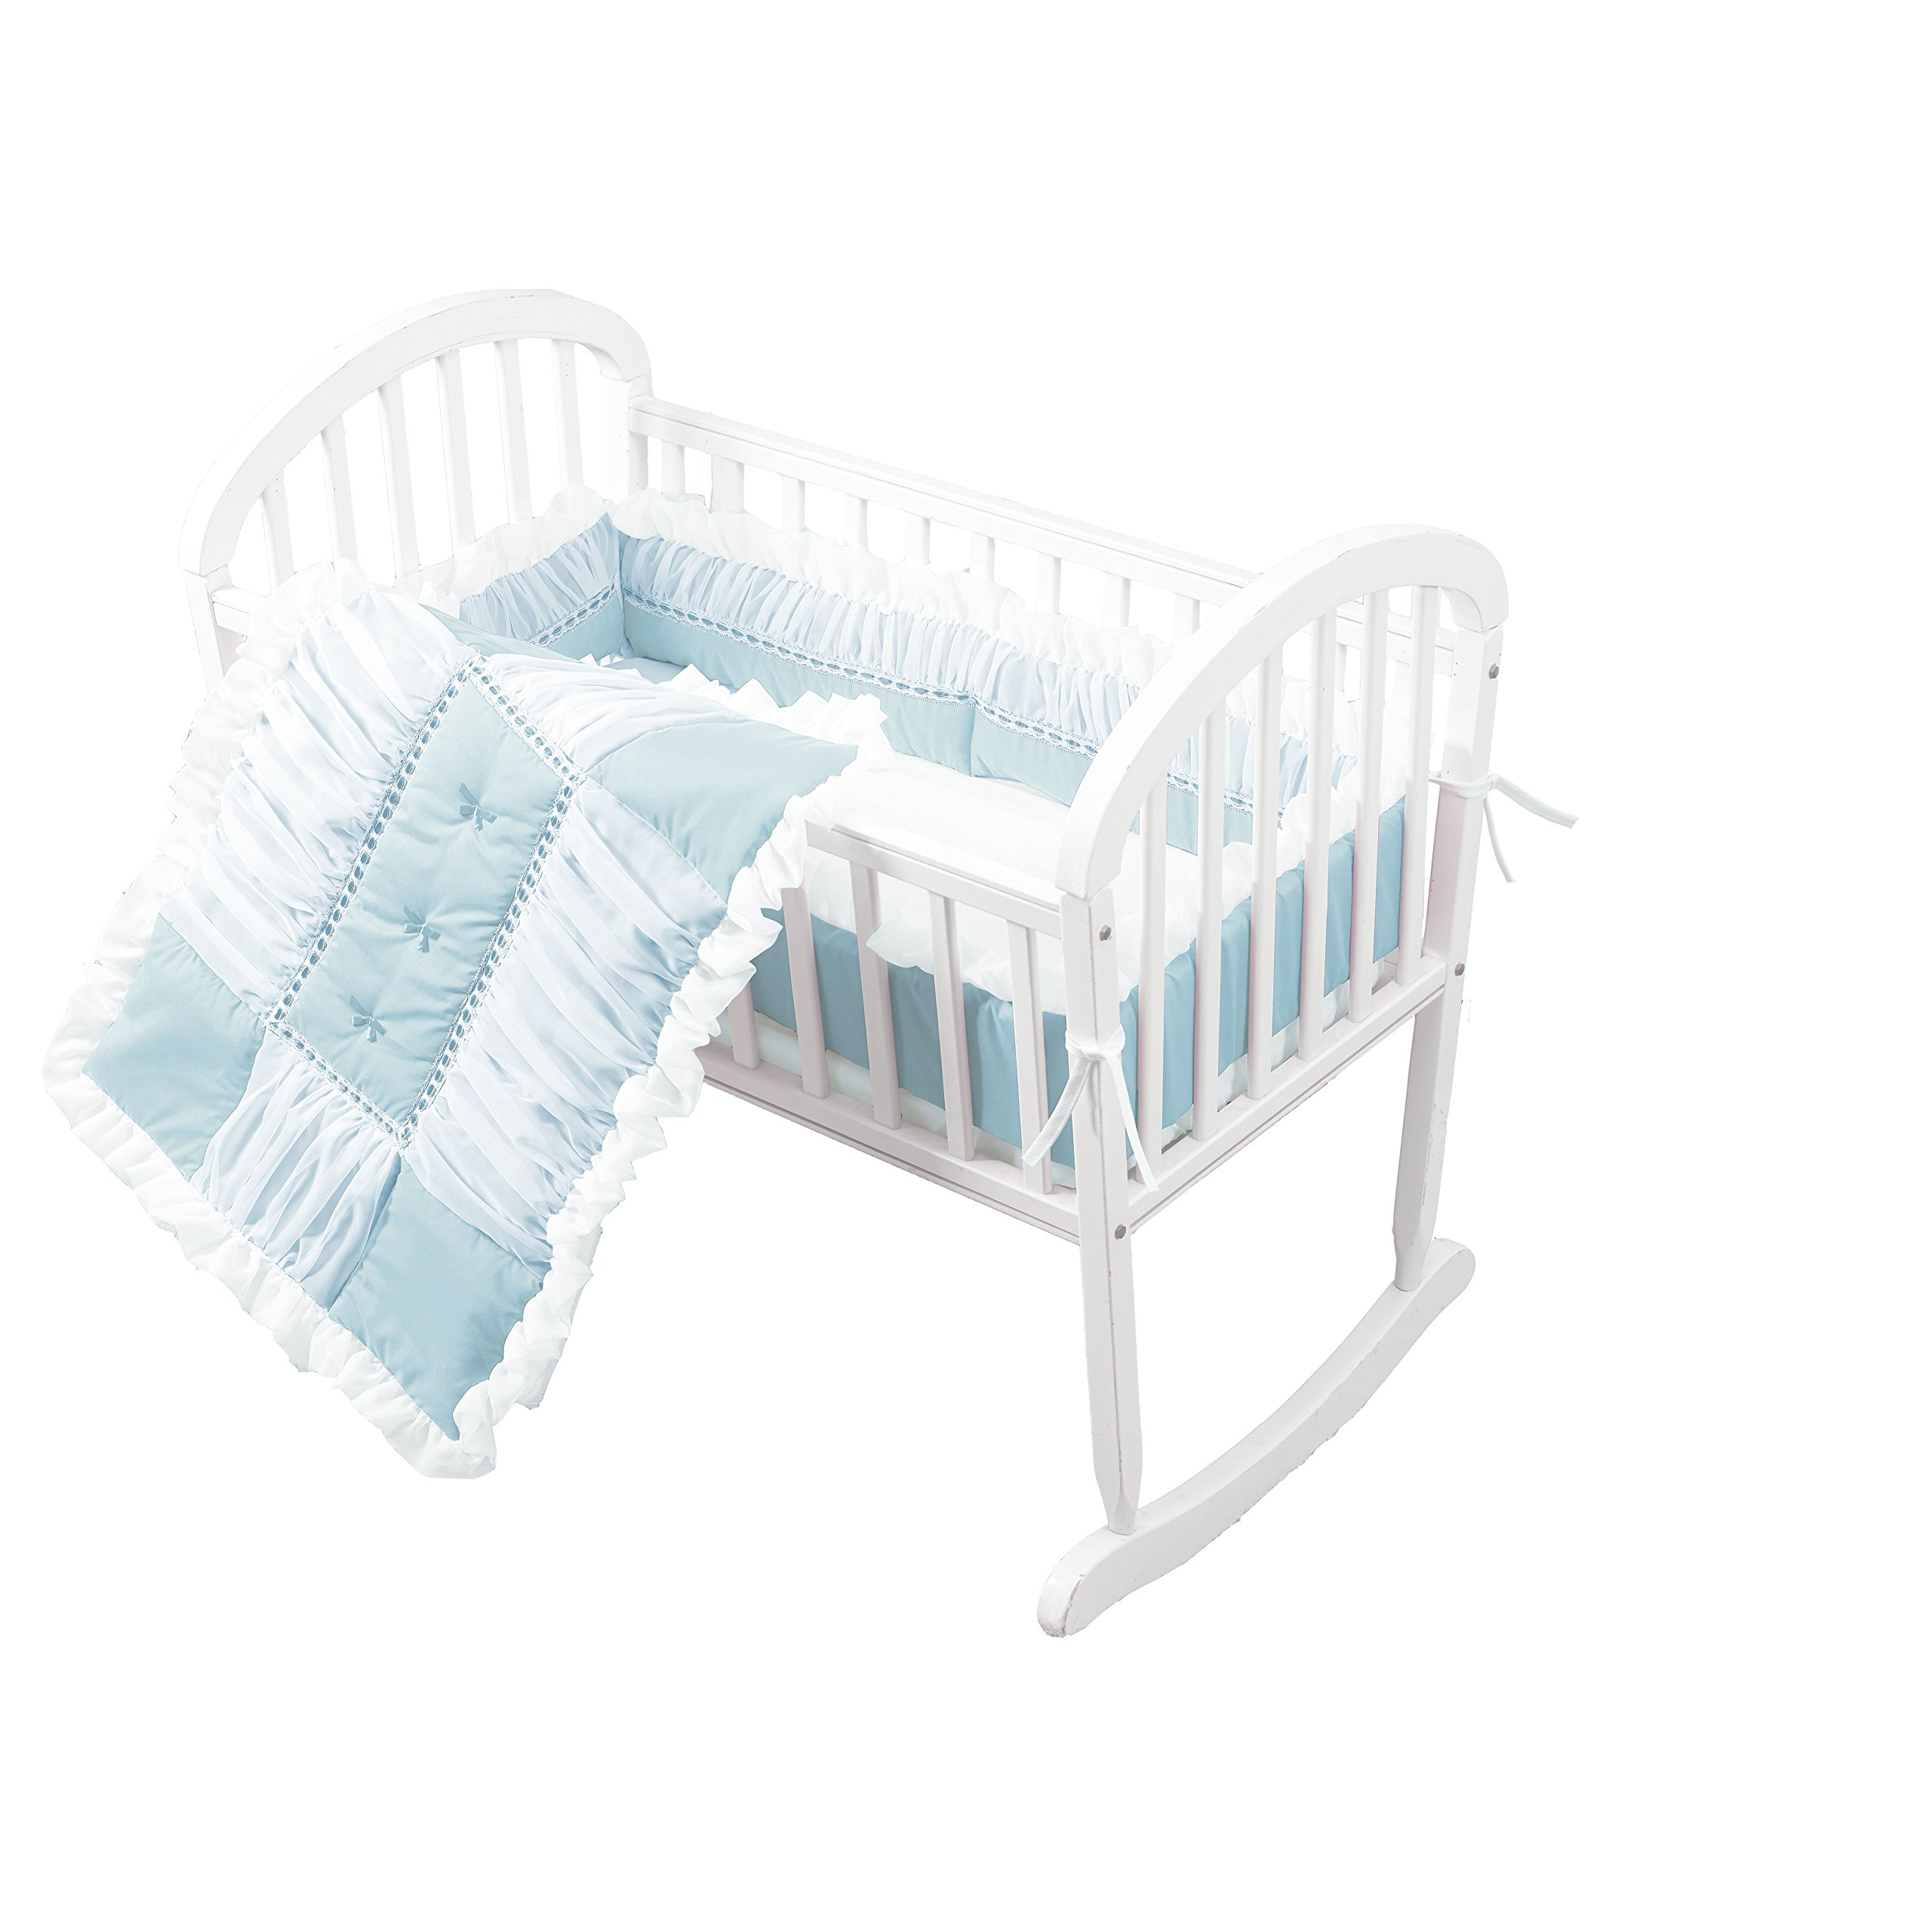 Baby Doll Sweet Touch Baby 3 Piece Cradle Bedding Set, Blue by Baby Doll